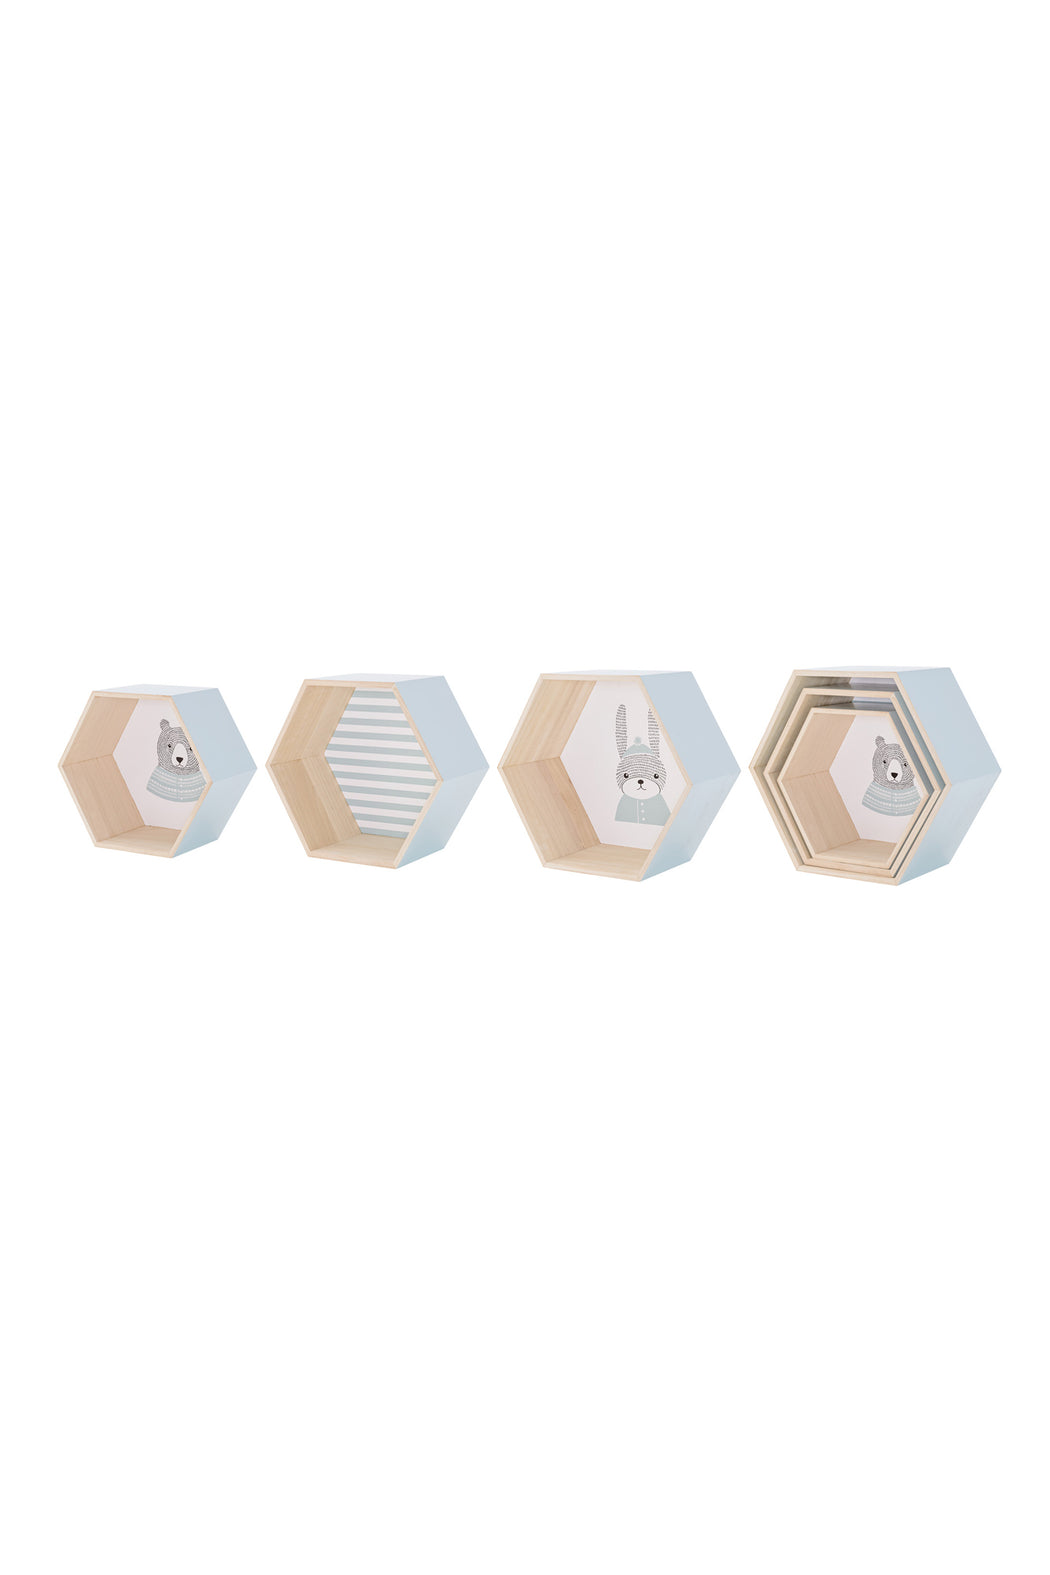 Hexgaonal Display Boxes, Storage, Bloomingville - 3LittlePicks